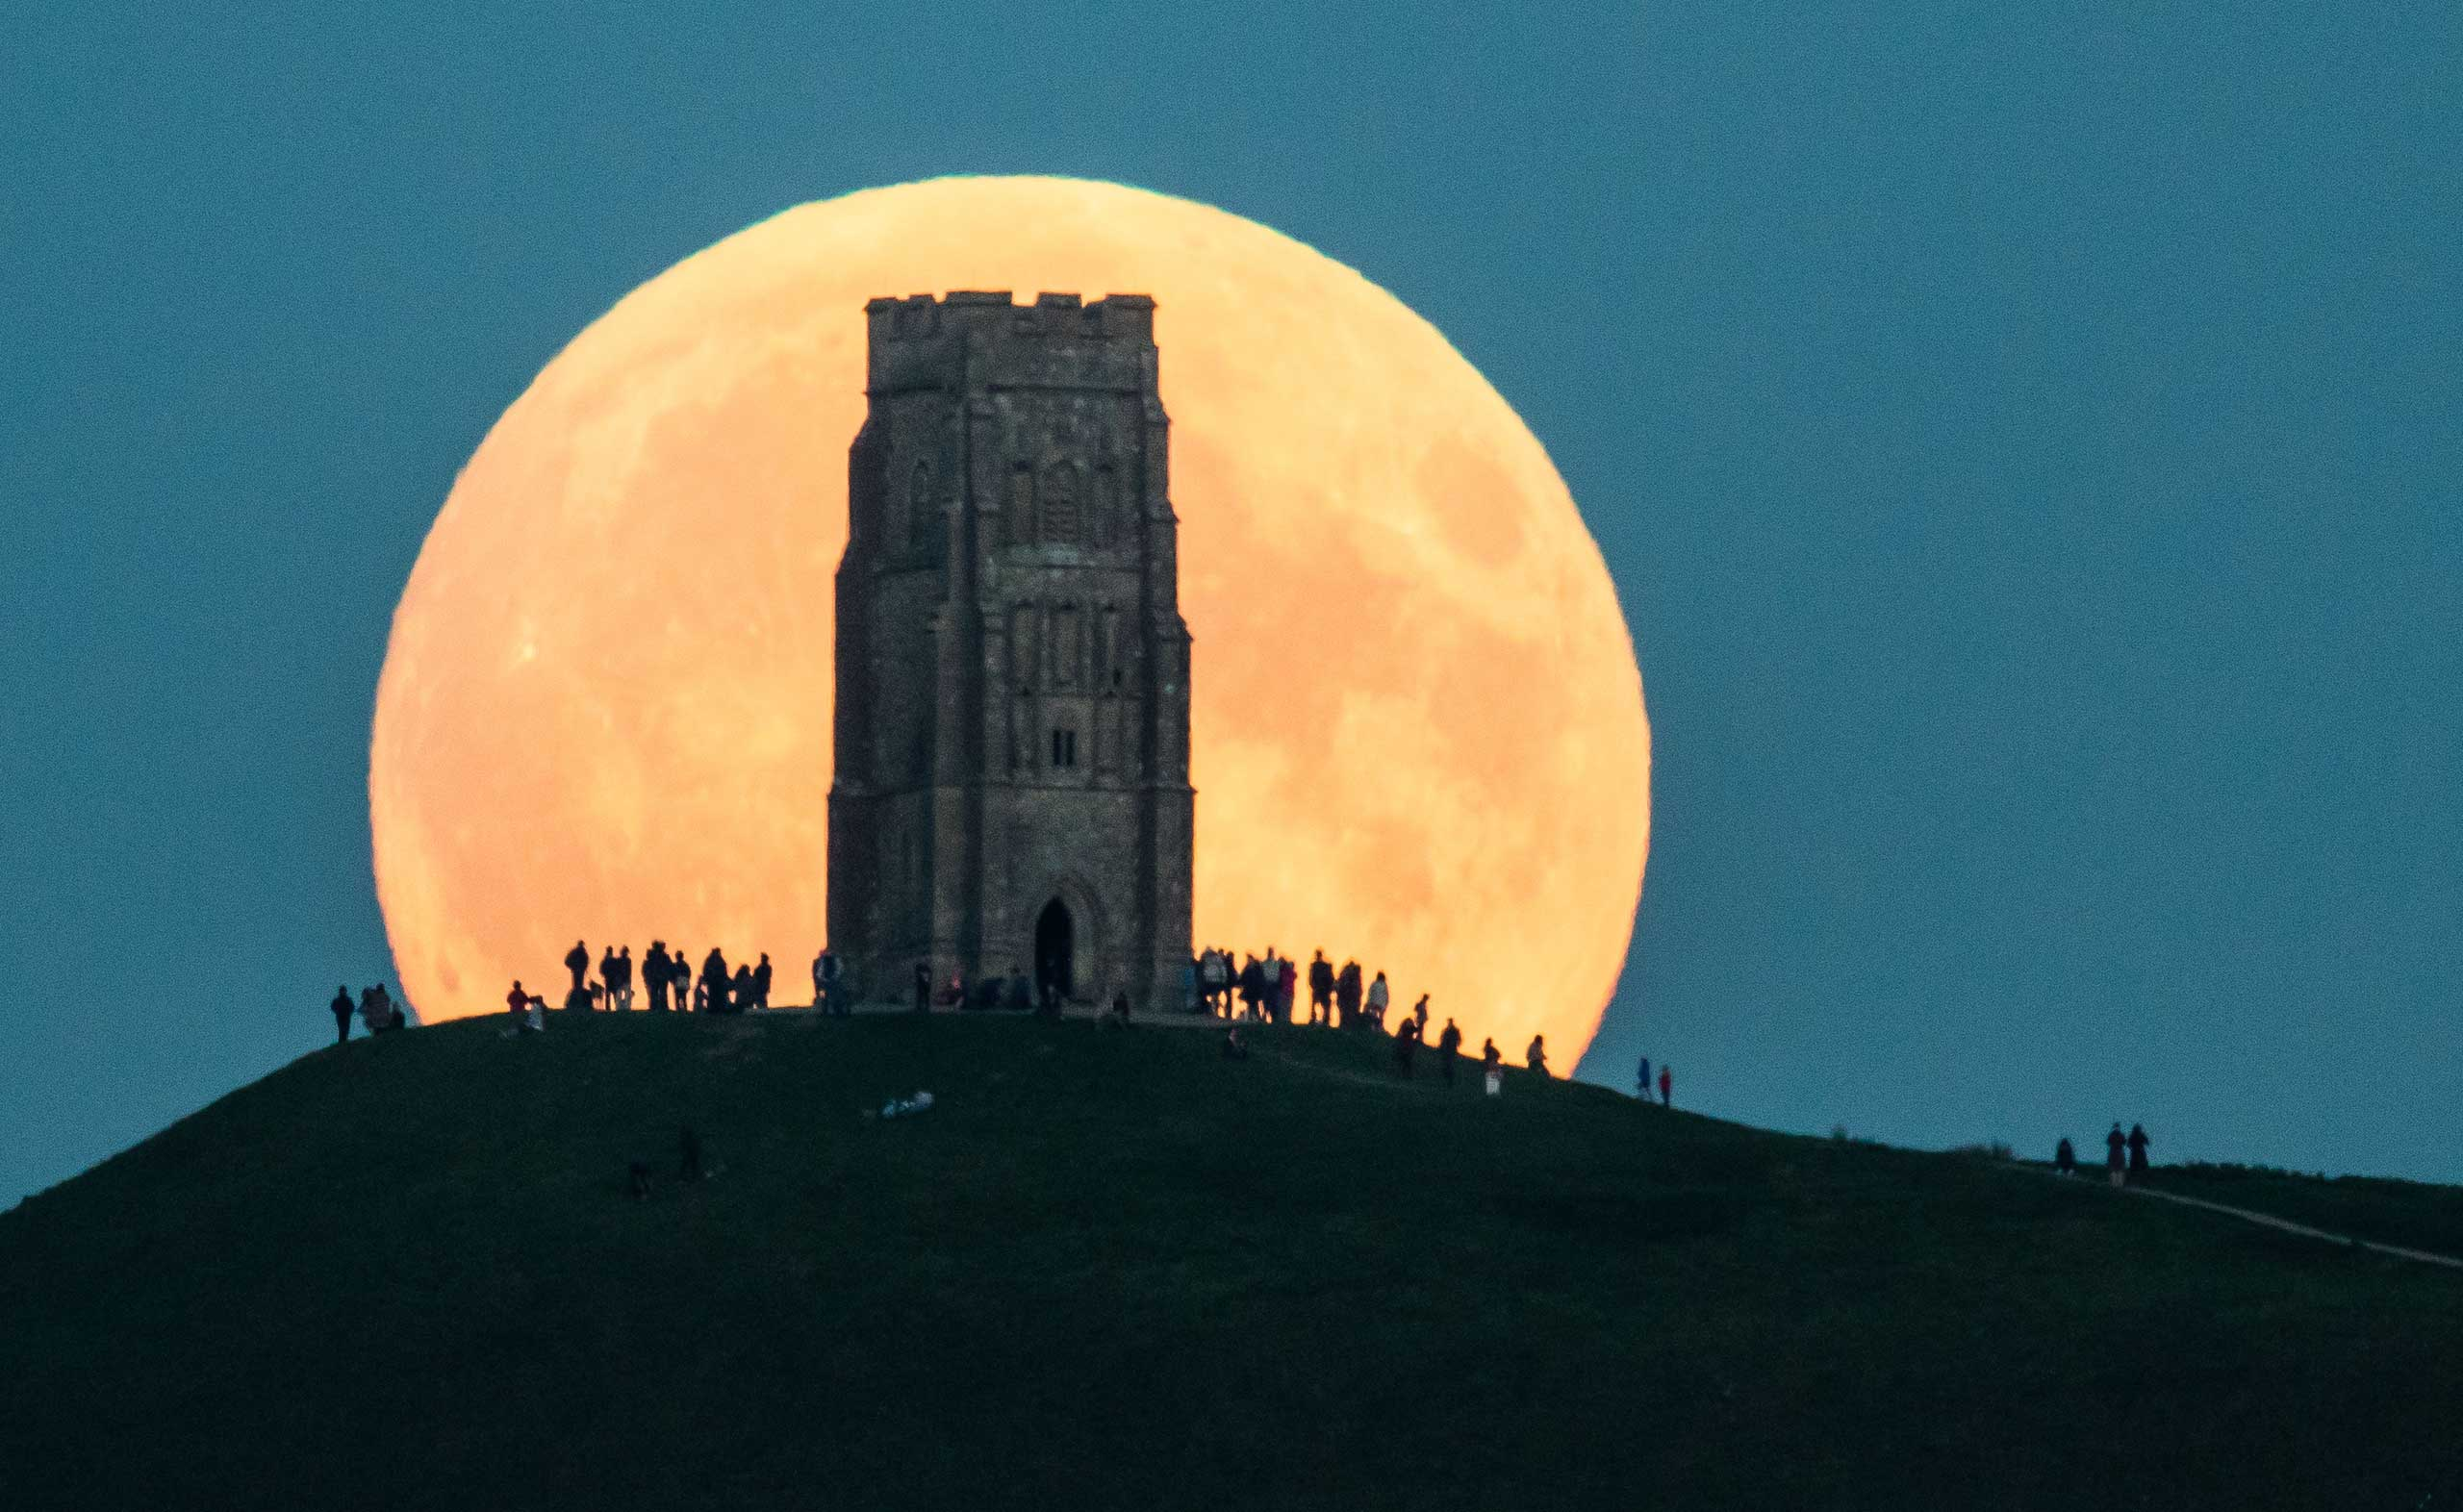 The supermoon rises behind Glastonbury Tor on Sept. 27, 2015 in Glastonbury, England. A supermoon occurs when the moon is both full and at the closest approach it makes to Earth during its orbit.